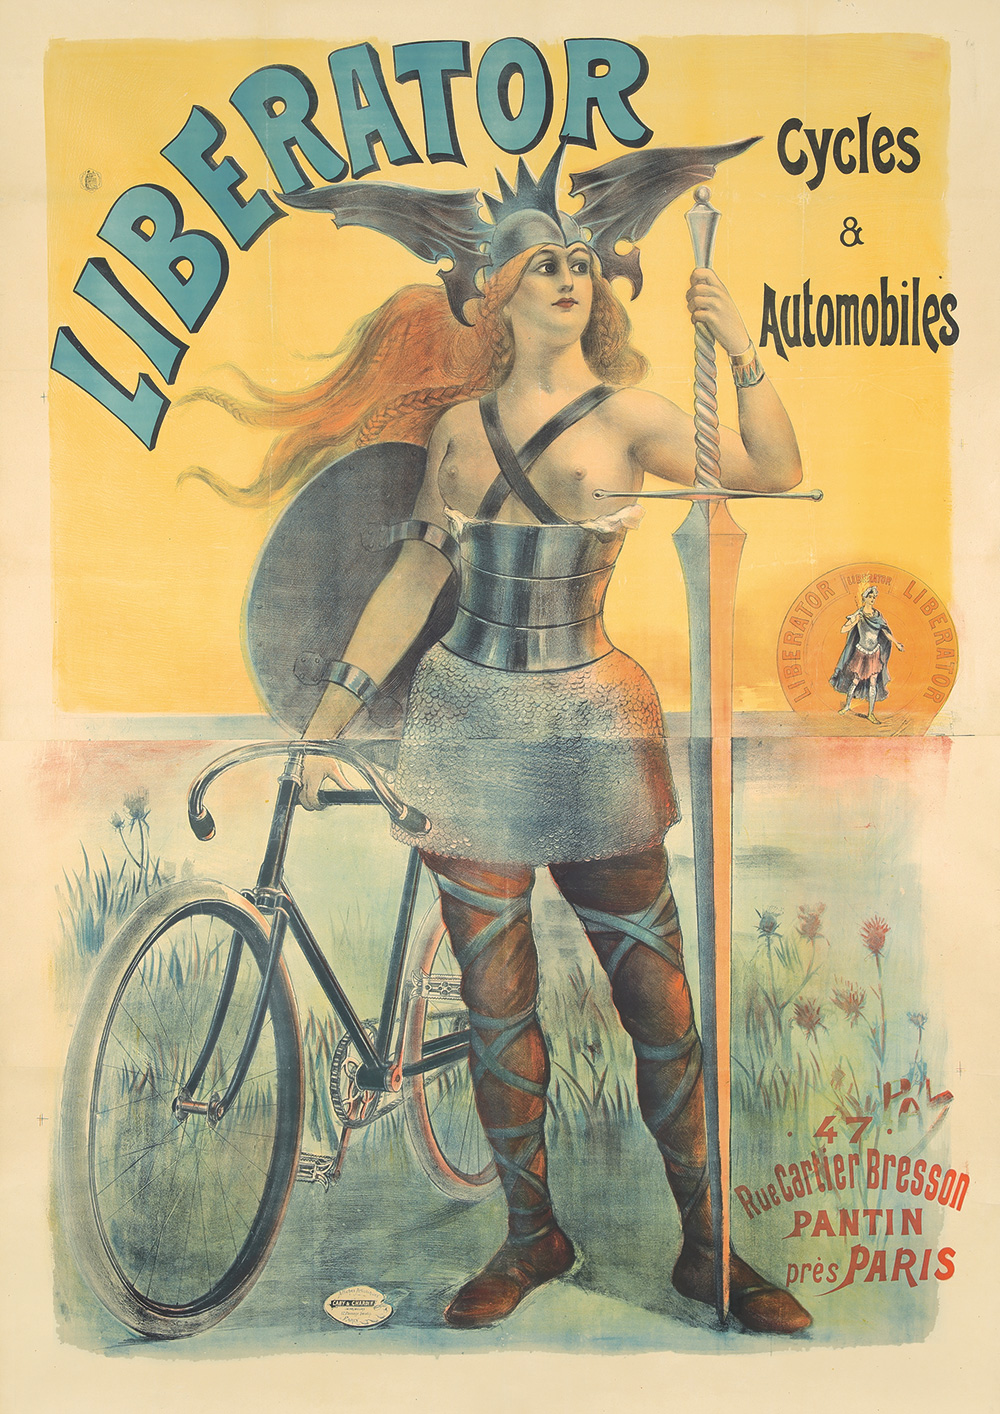 14. Liberator Cycles & Automobiles. 1899.